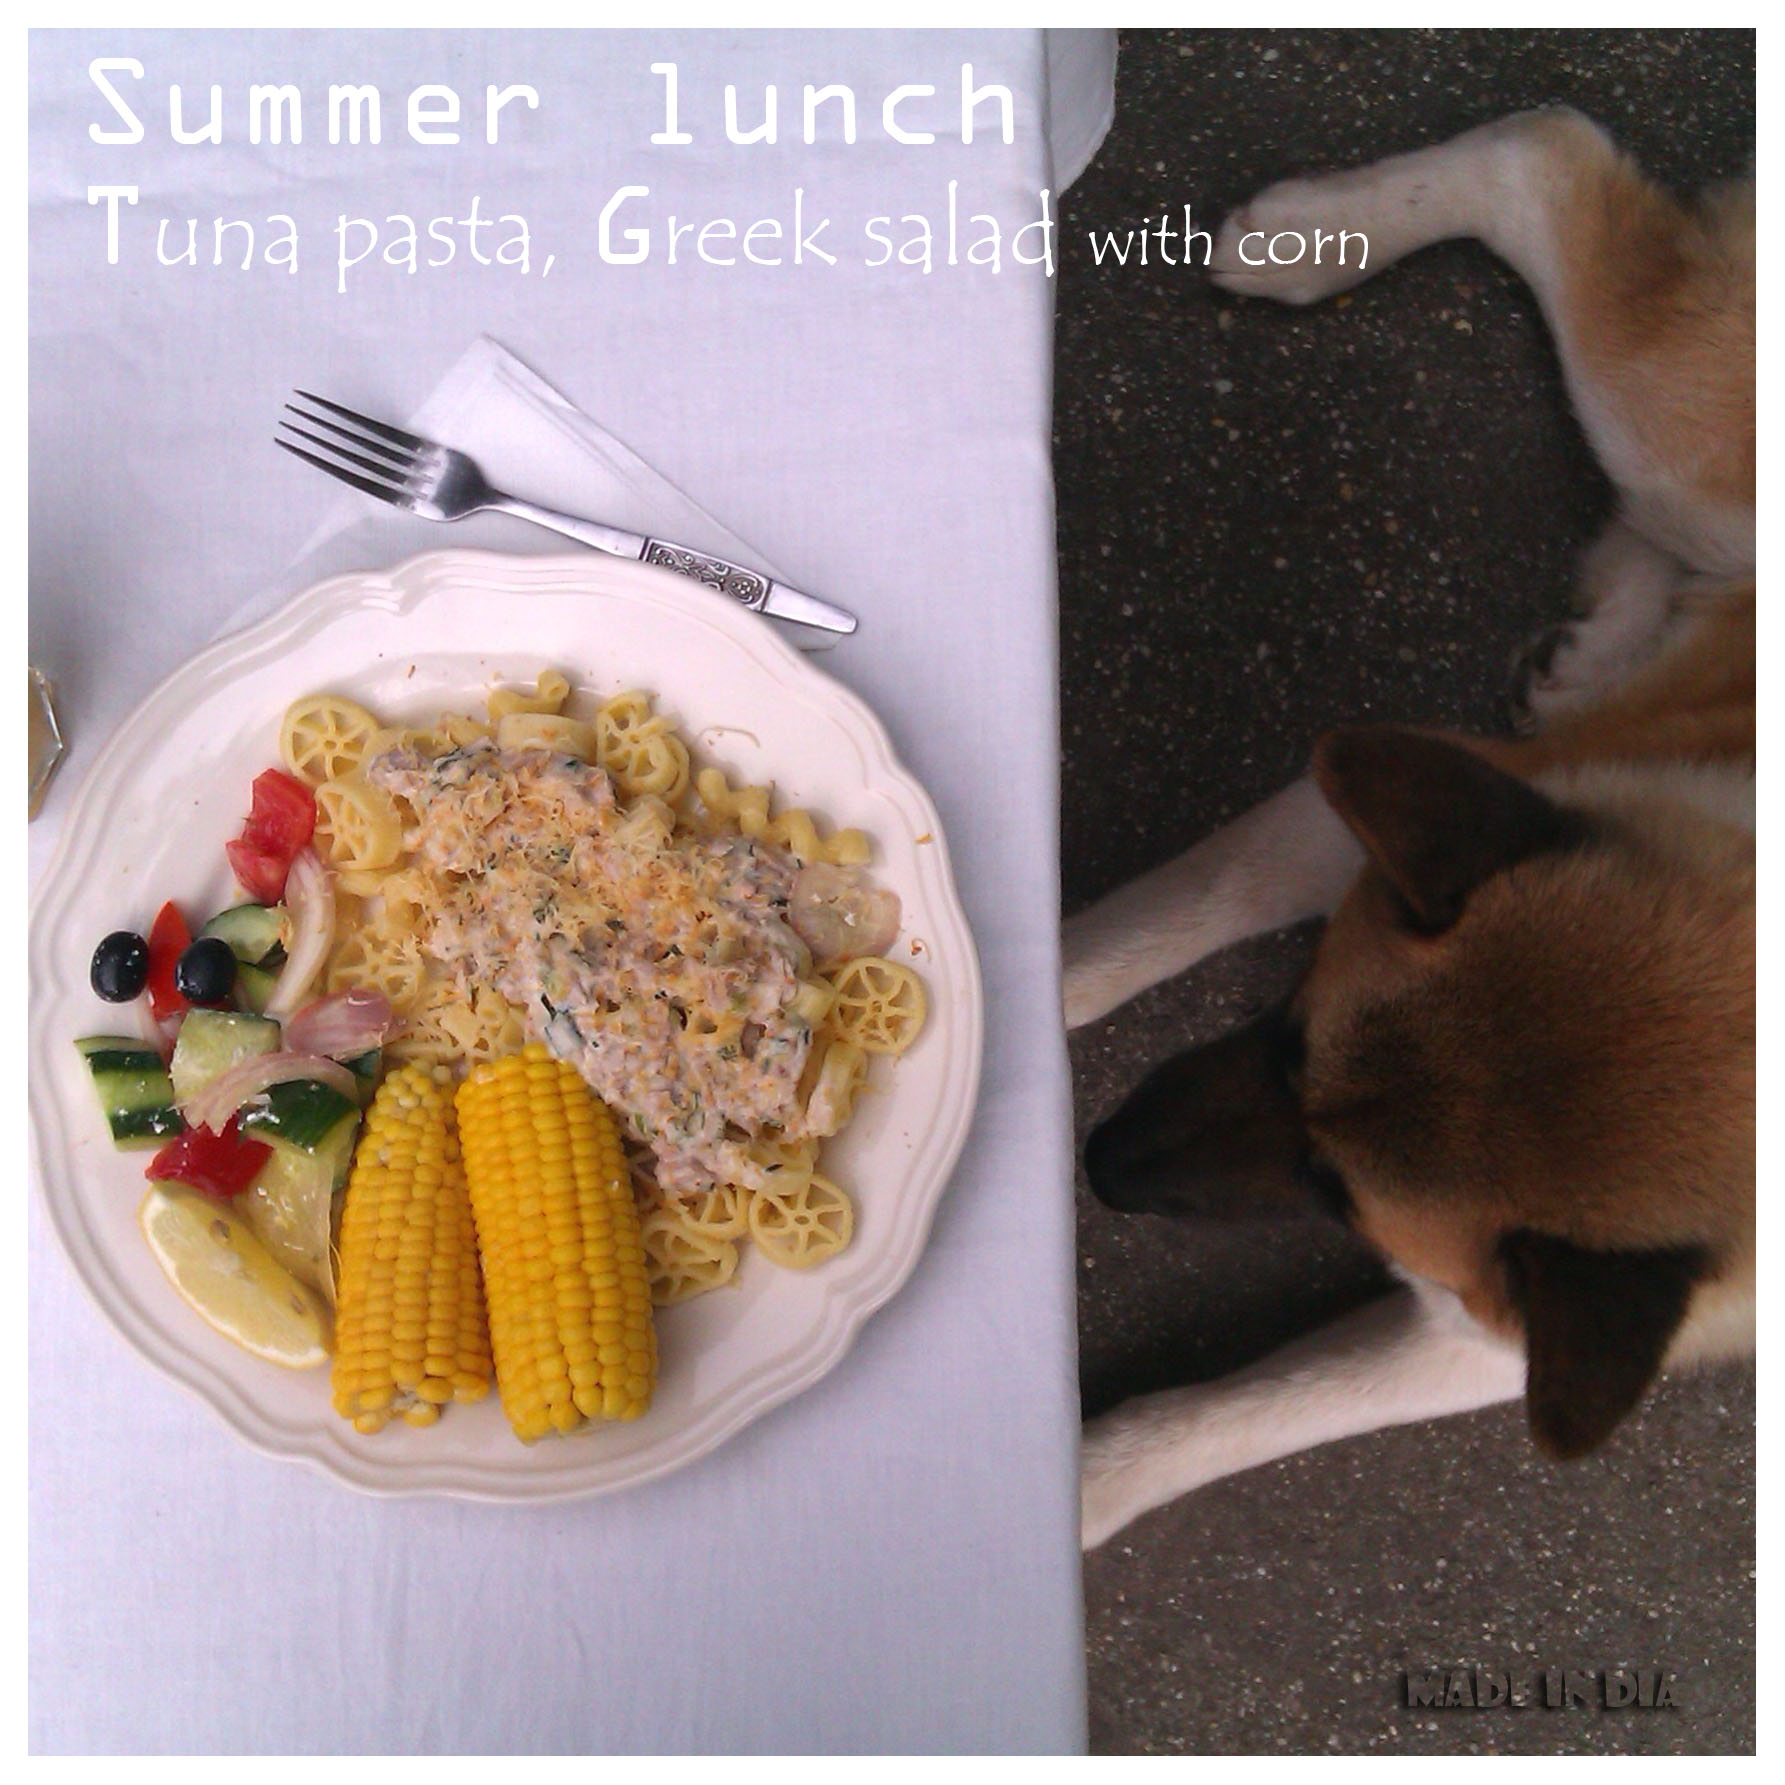 Summer lunch